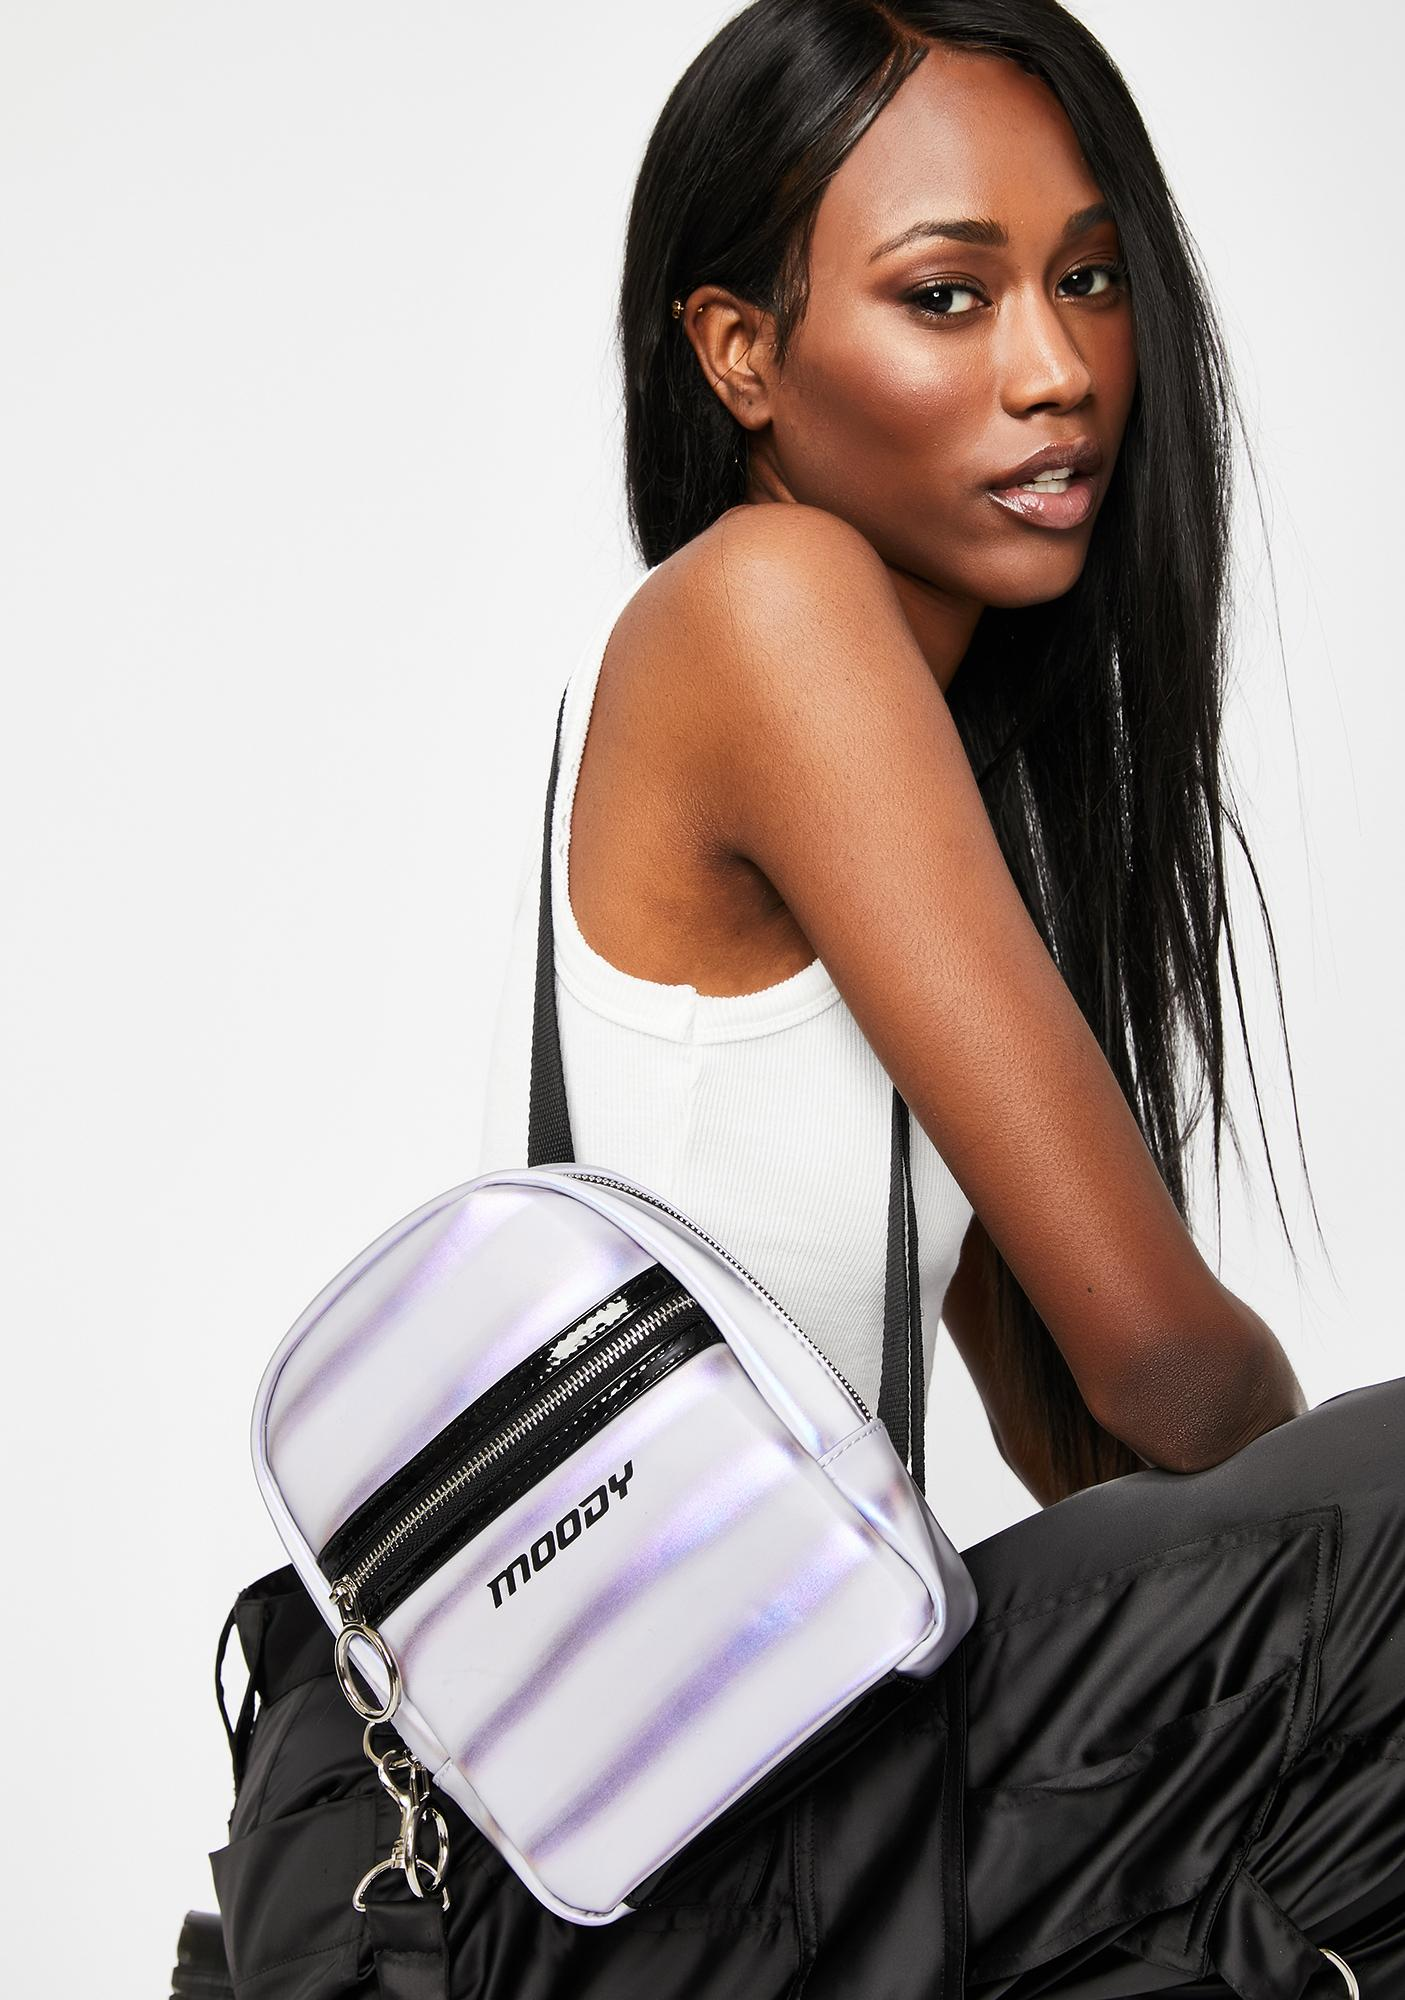 HOROSCOPEZ In The Mood Holographic Backpack